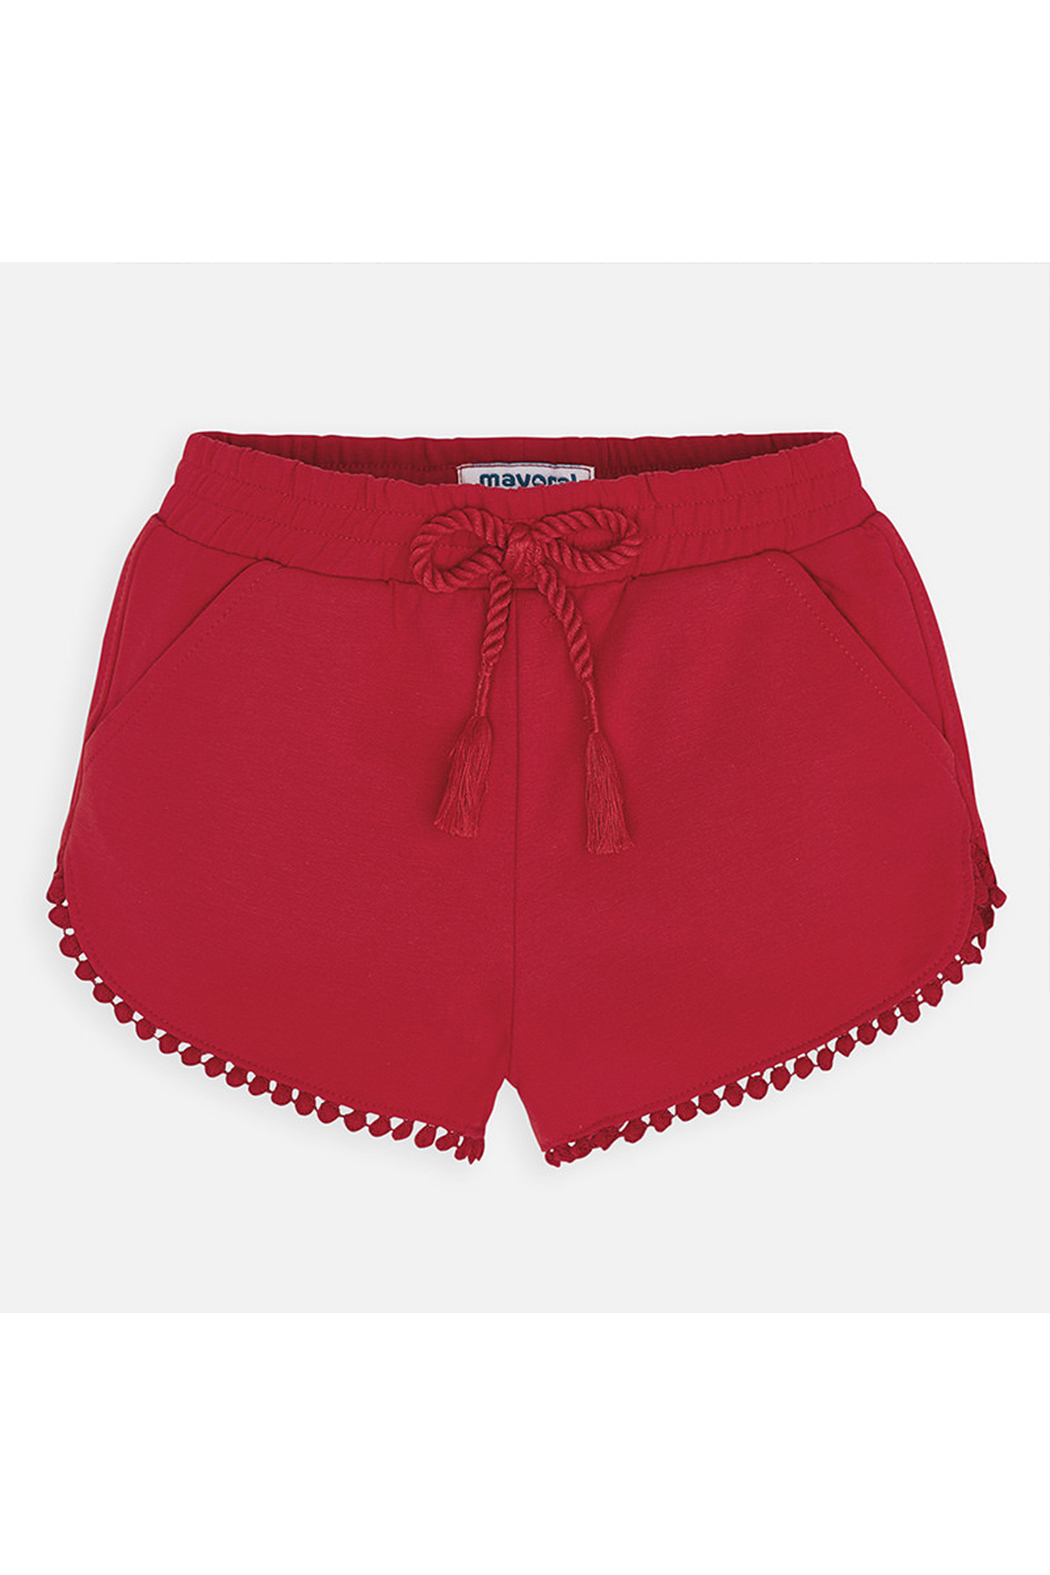 Mayoral Knit Shorts - Front Cropped Image